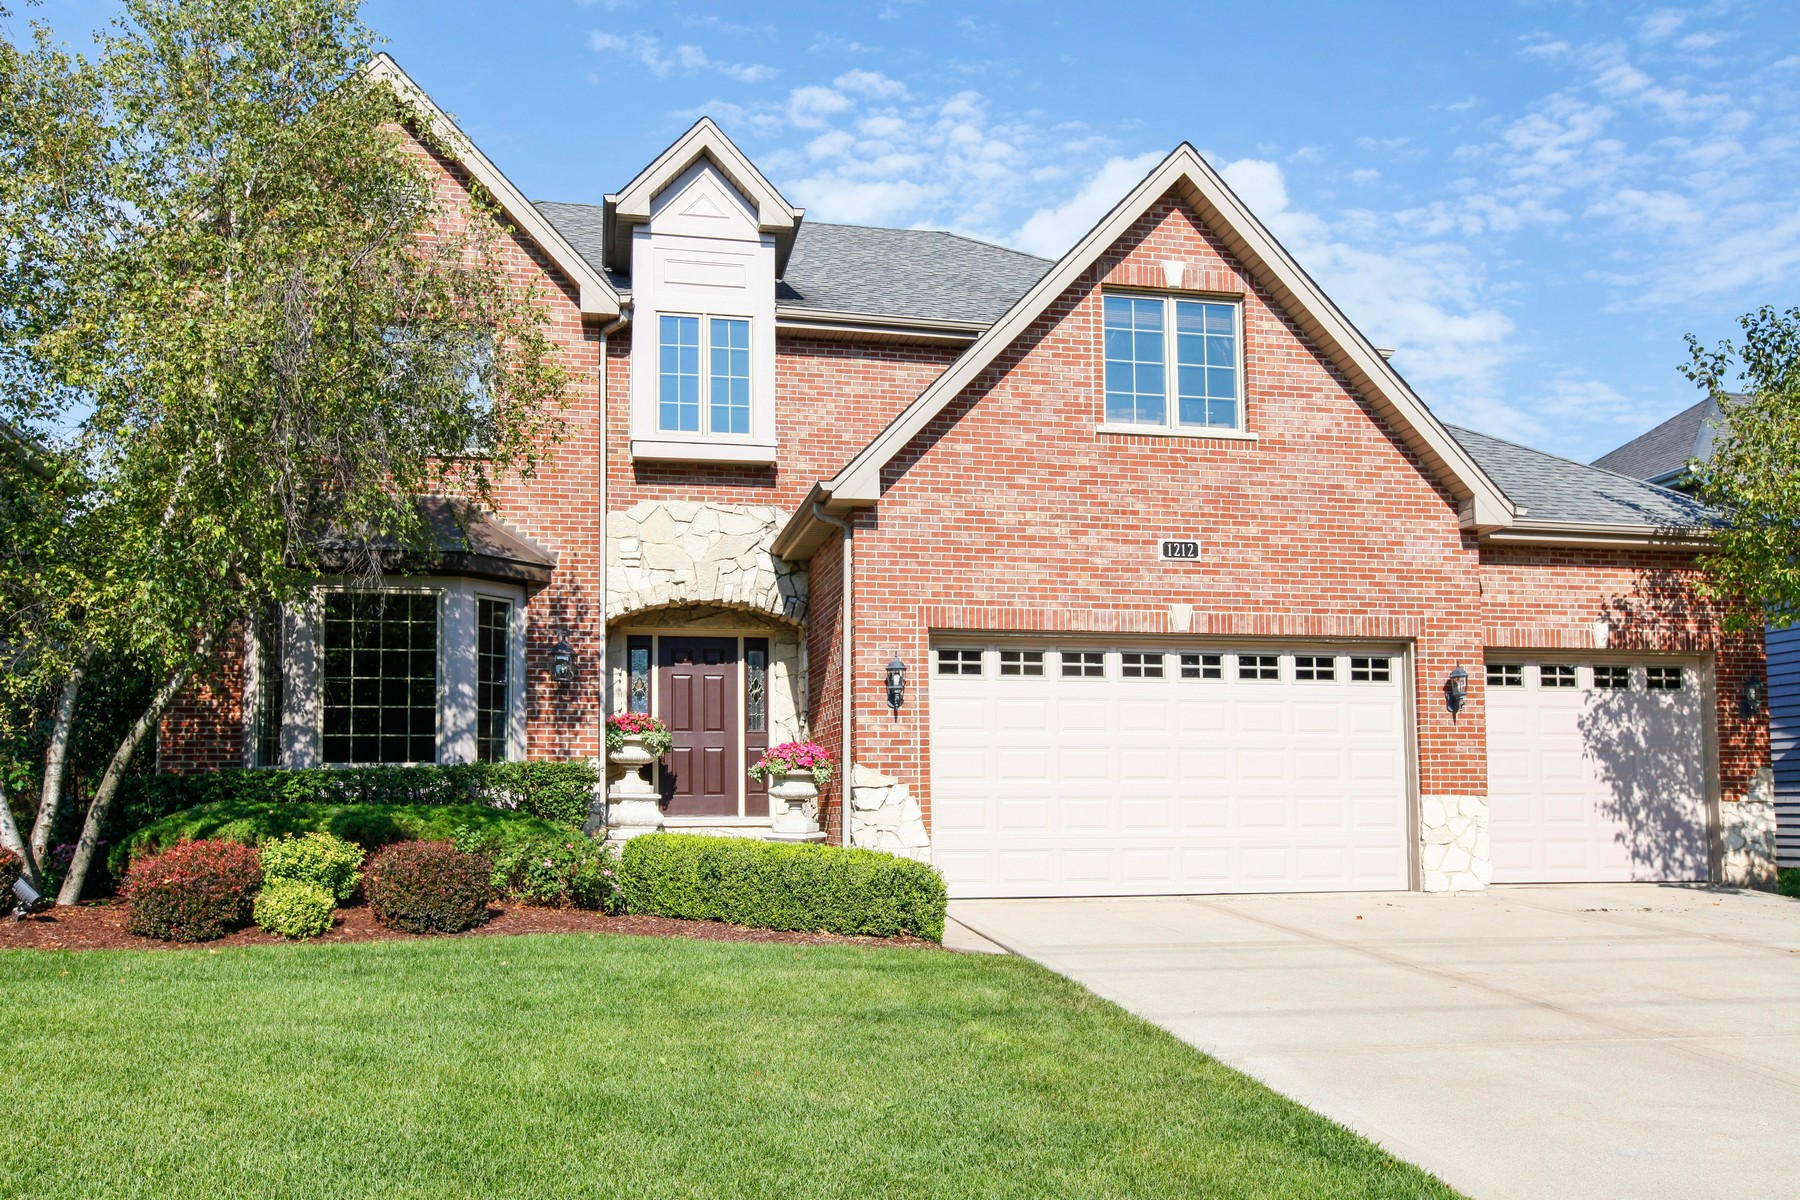 Single Family Home for Sale at Custom built, top of the line. 1212 Ridge Road Westmont, Illinois 60559 United States